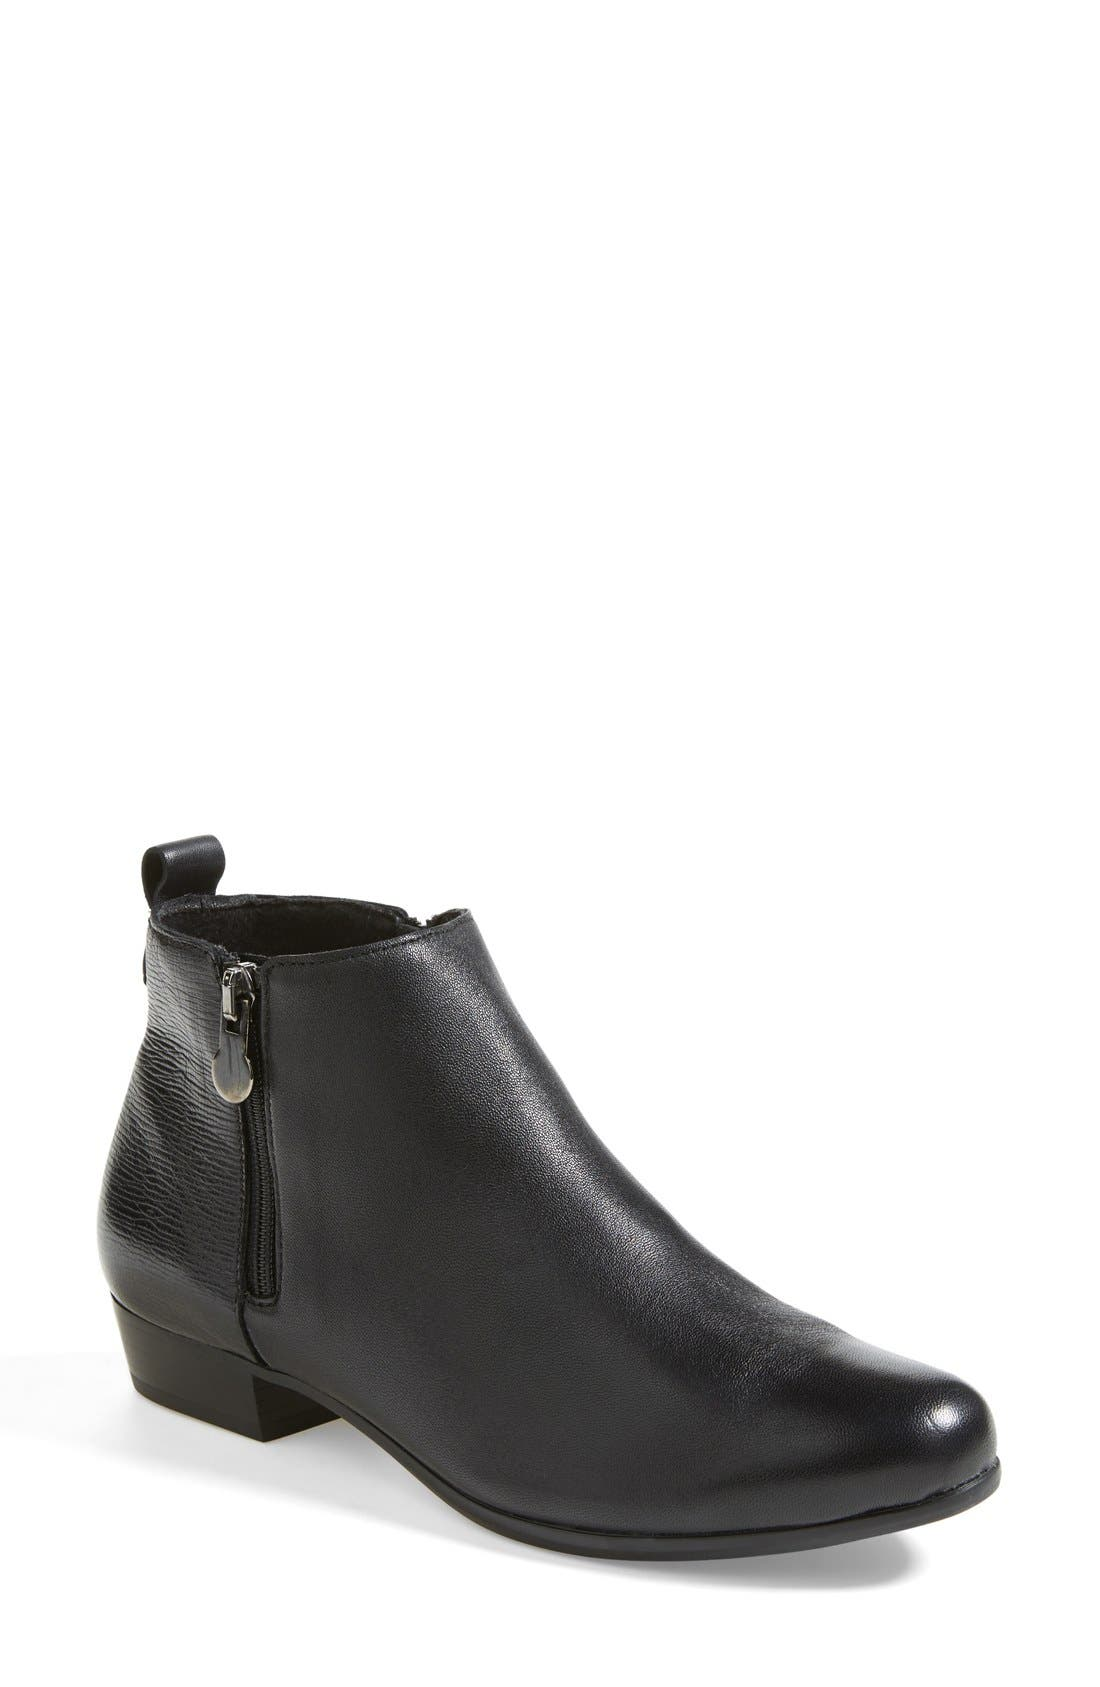 Lexi Boot,                         Main,                         color, BLACK LEATHER